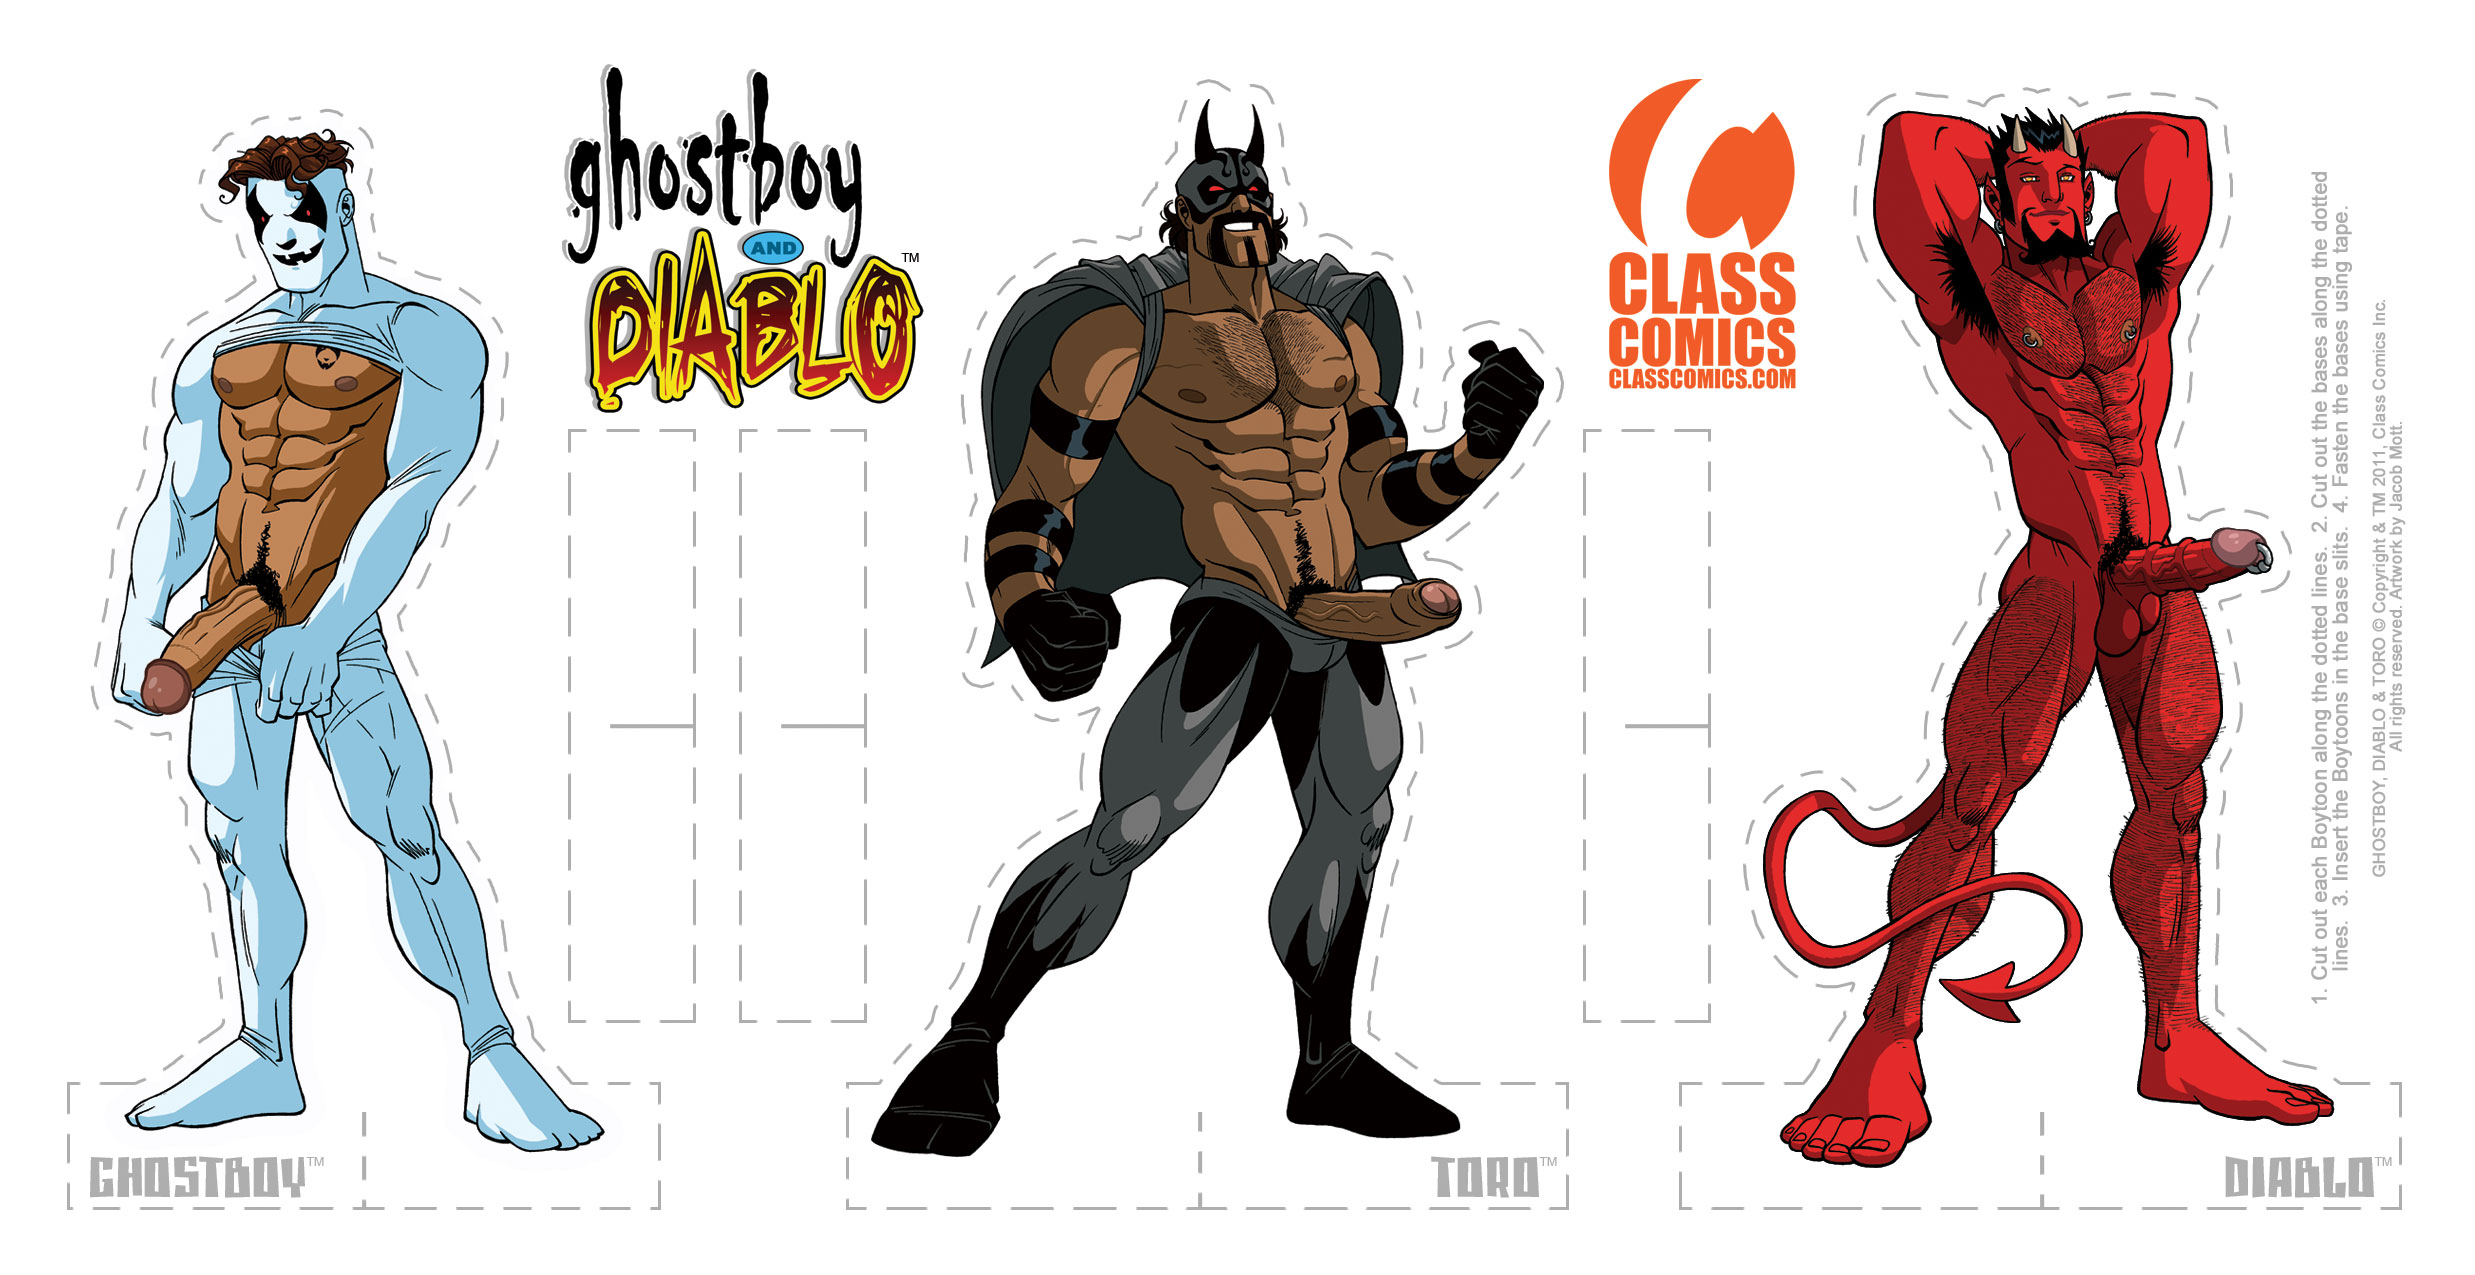 GHOSTBOY and DIABLO #1 – Paper Standees PACK – Art by Jacob Mott.